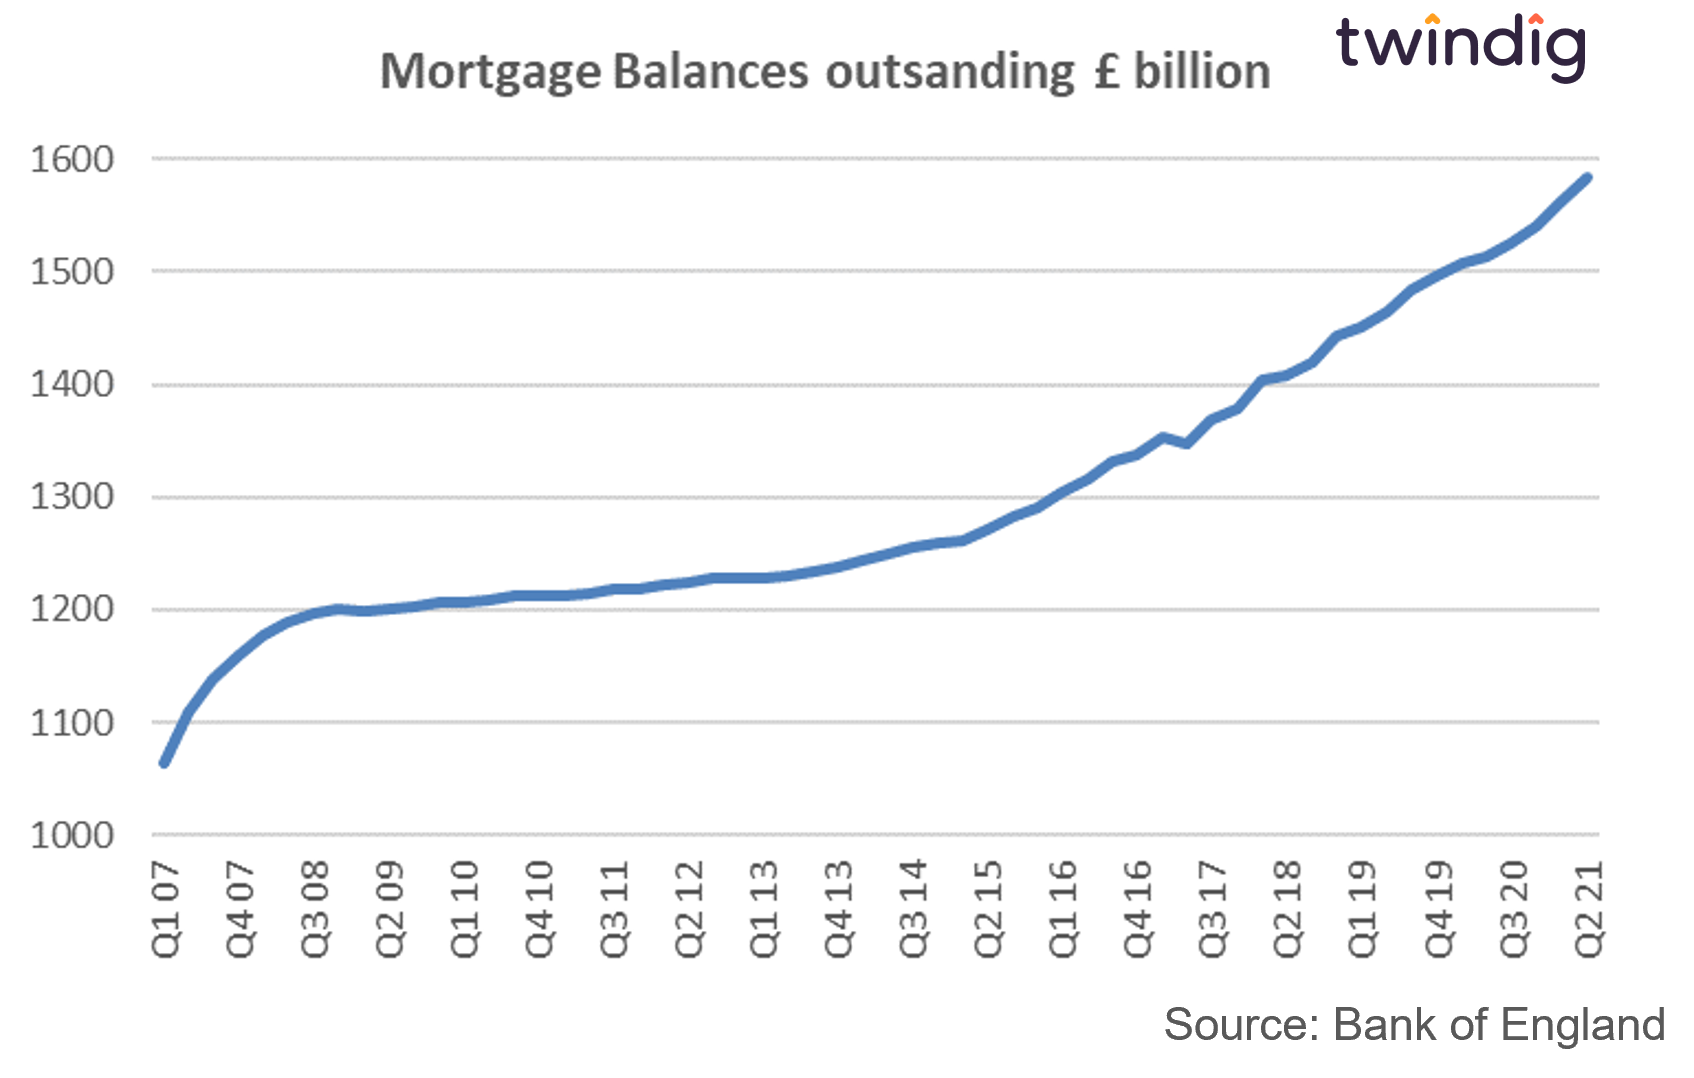 Graph chart of the value of outstanding mortgage balances in the UK twindig anthony codling